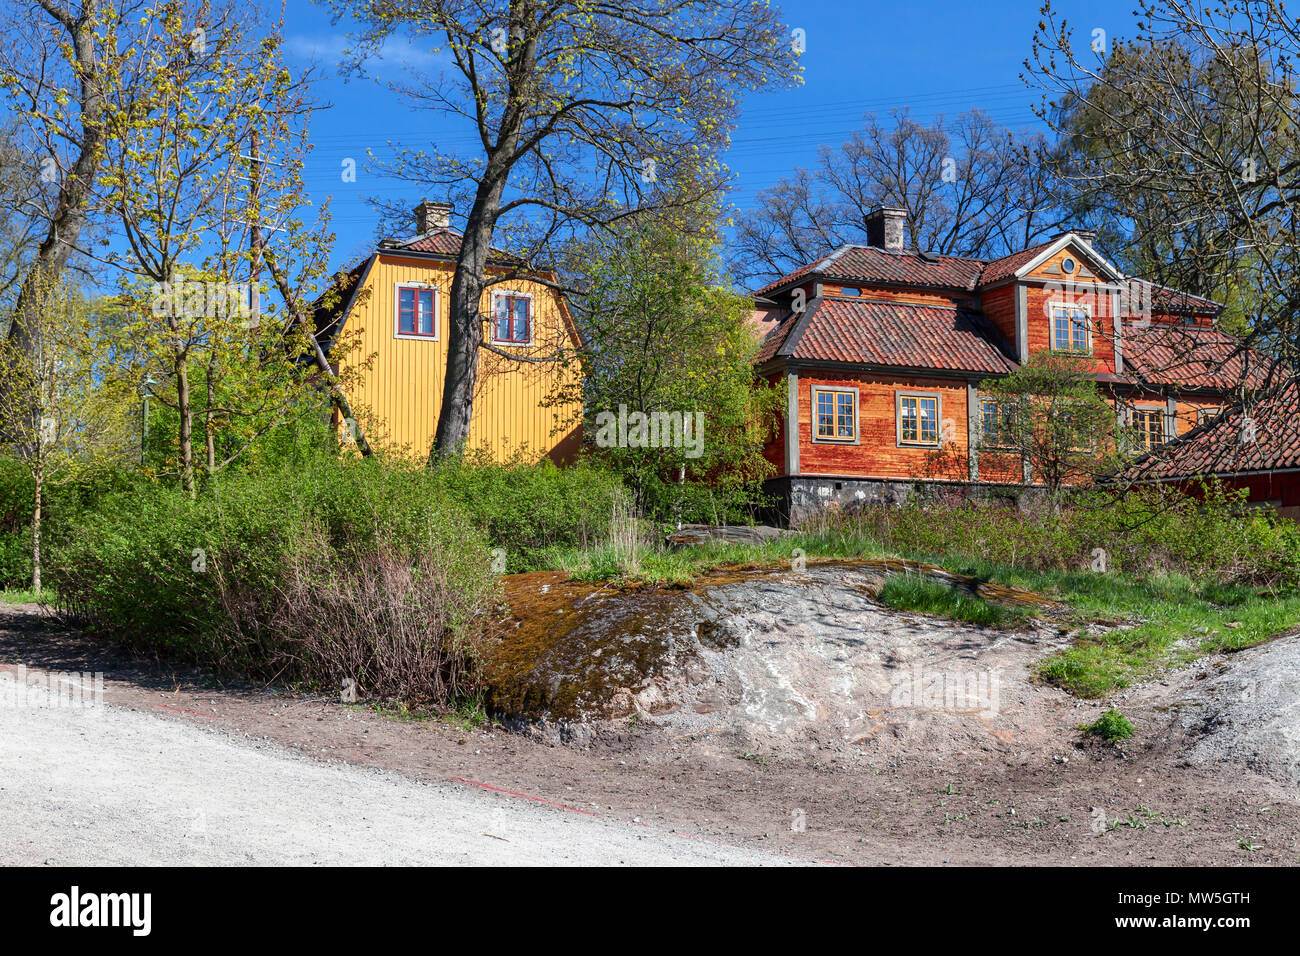 Swedish rural landscape, colorful old wooden houses on green hill - Stock Image